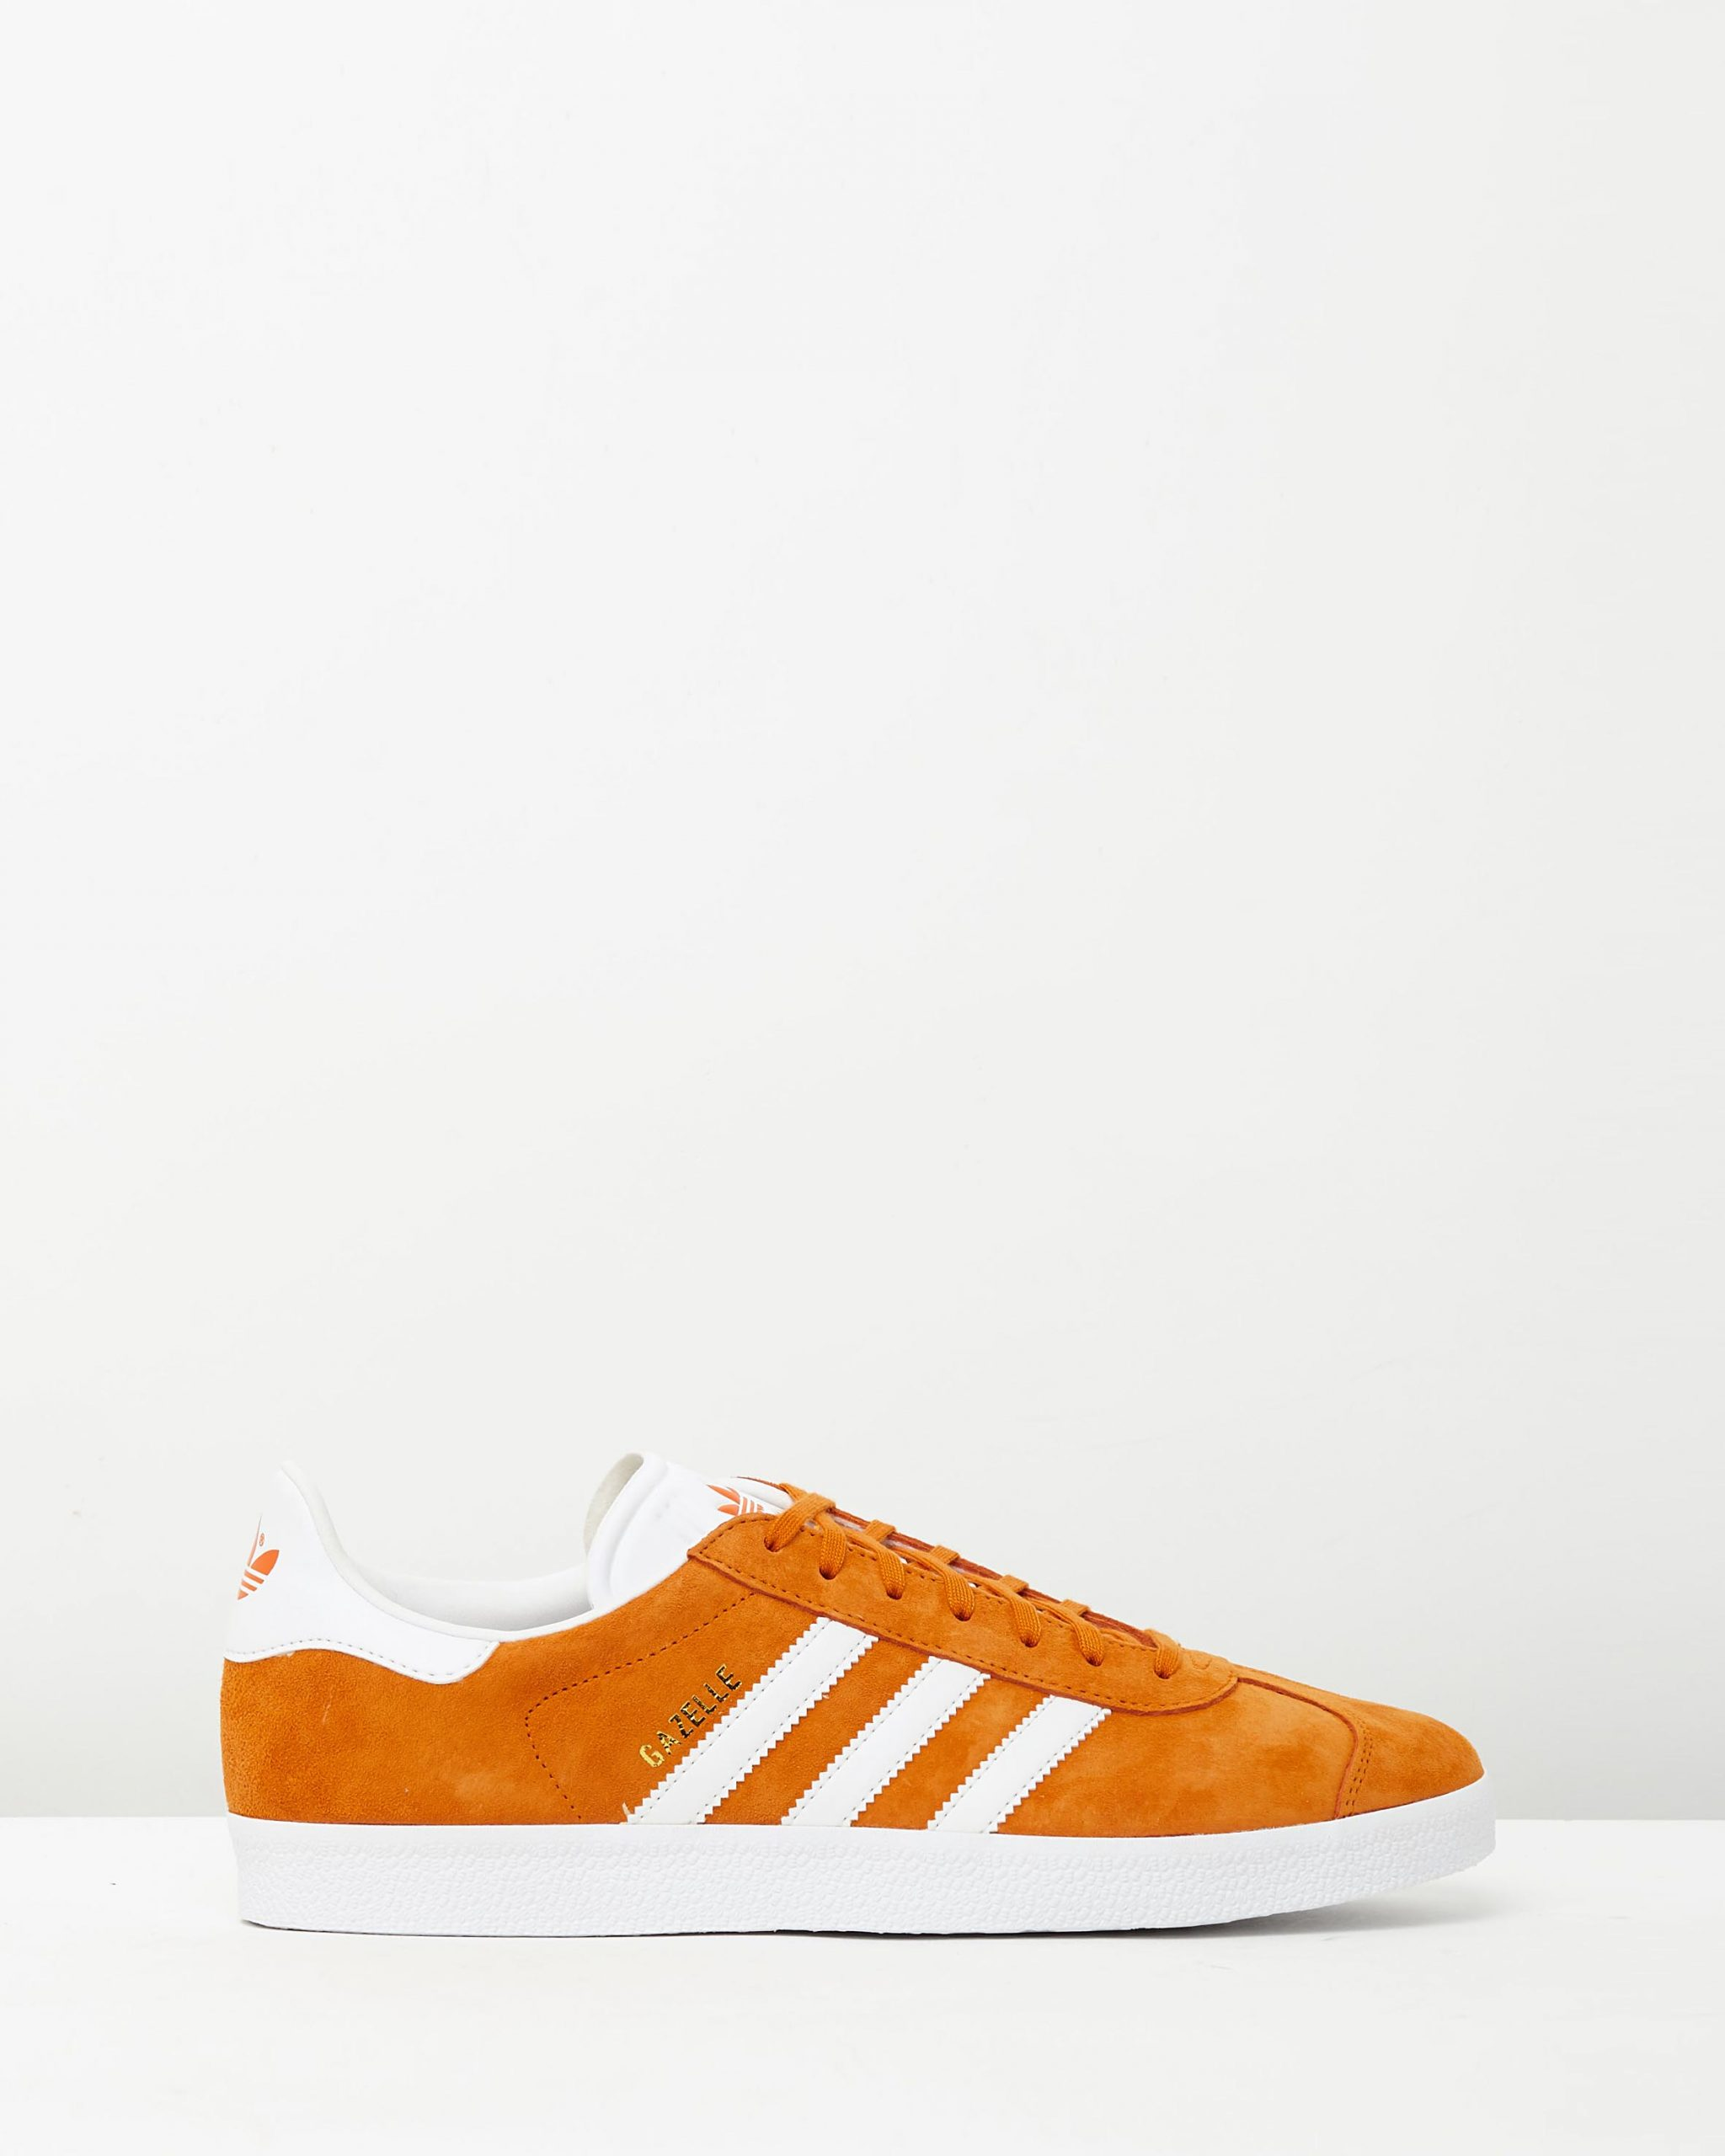 Adidas Men's Gazelle Unity Orange Sneakers